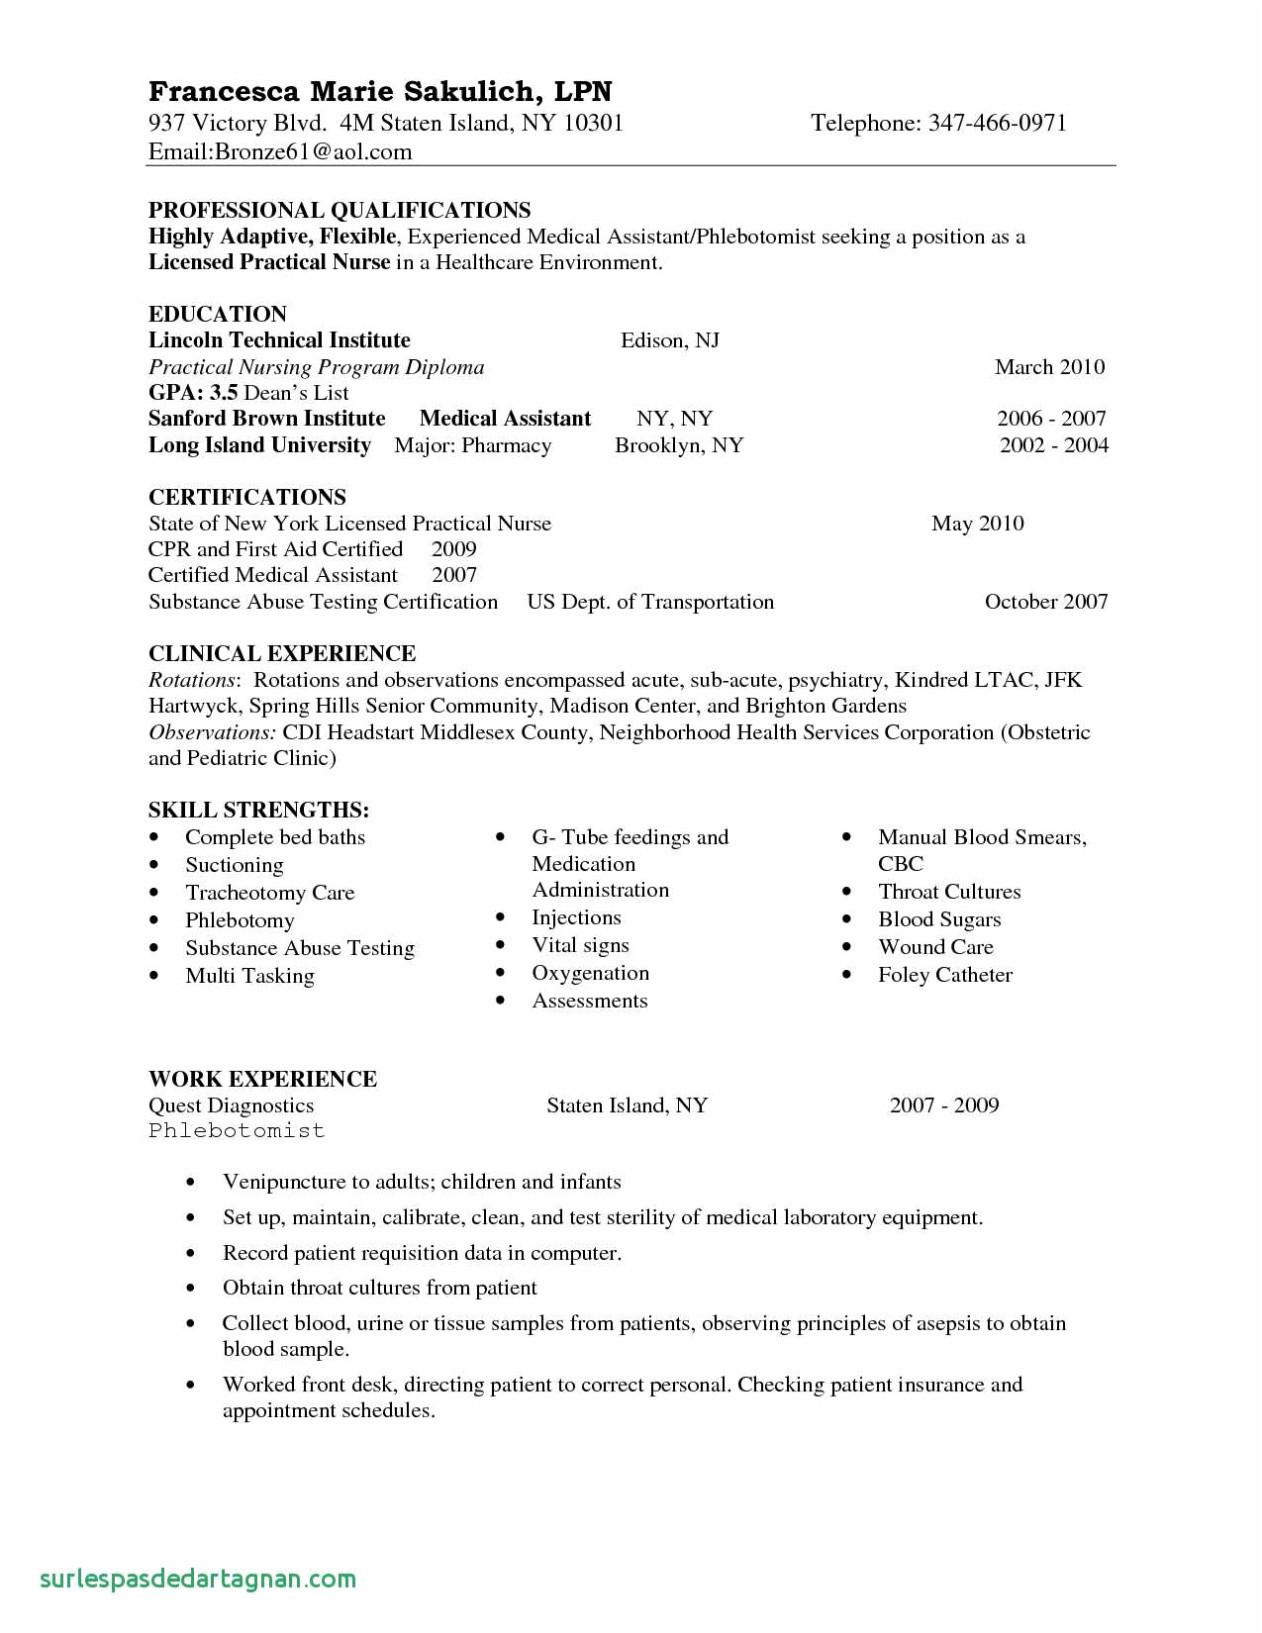 resume template for new graduate nurse example-Awesome New Grad Nursing Resume Template 13-b